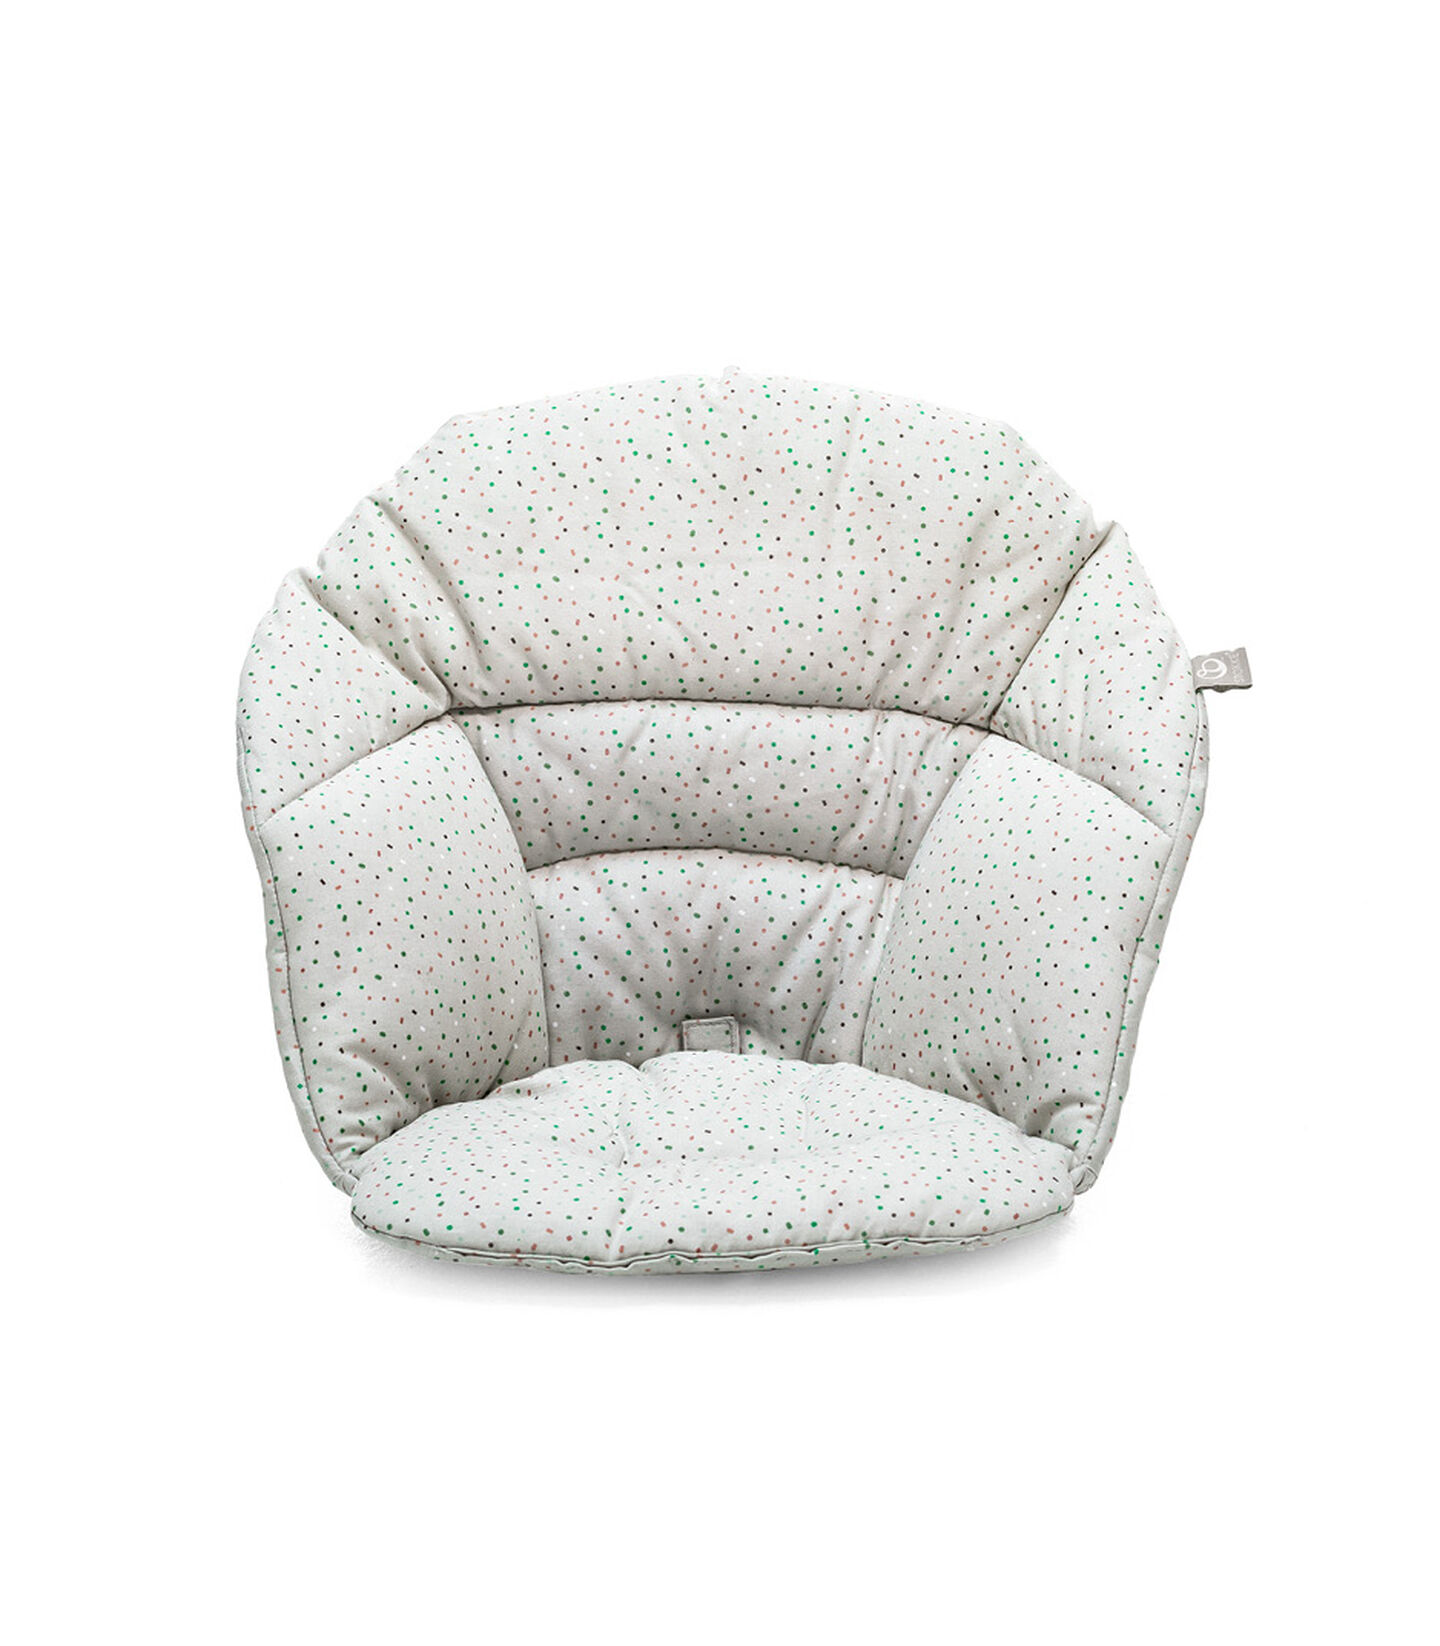 Stokke® Clikk™ Cushion Soft Grey Sprinkles, Grey Sprinkles, mainview